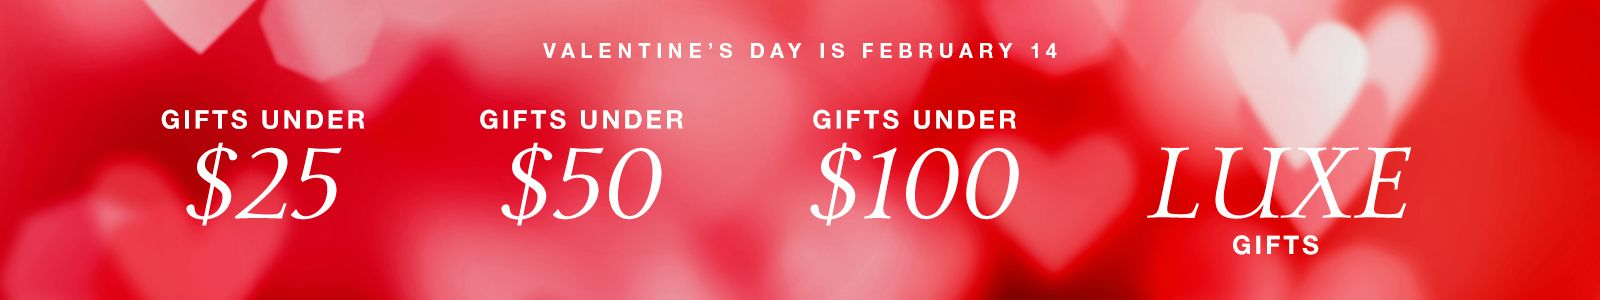 Valentine's Day is February 14, Gifts Under $25, Gifts Under $50, Gifts Under $100, Luxe Gifts